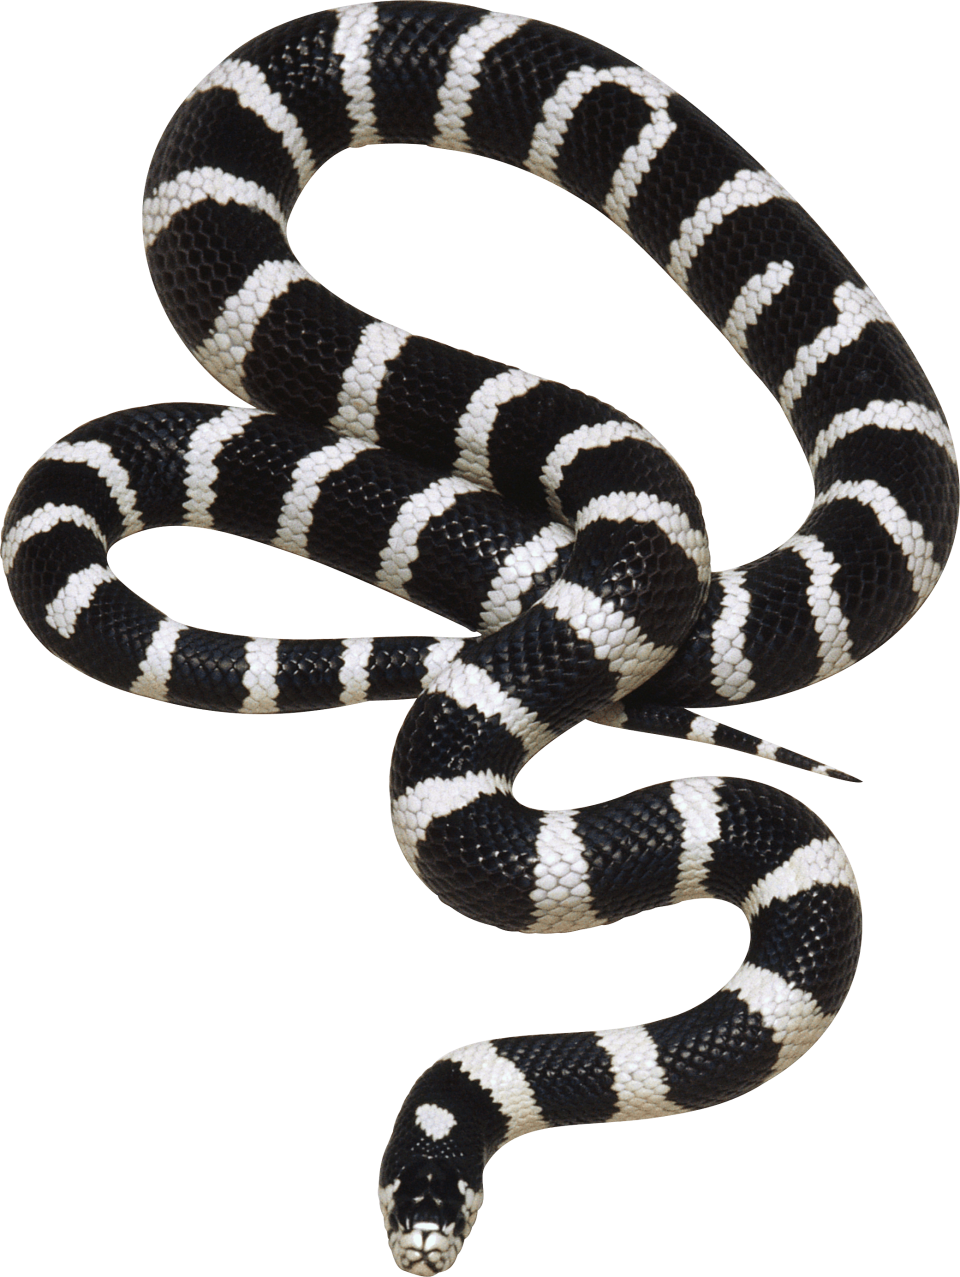 Black And White Snake Png Image Purepng Free Transparent Cc0 Png Image Library